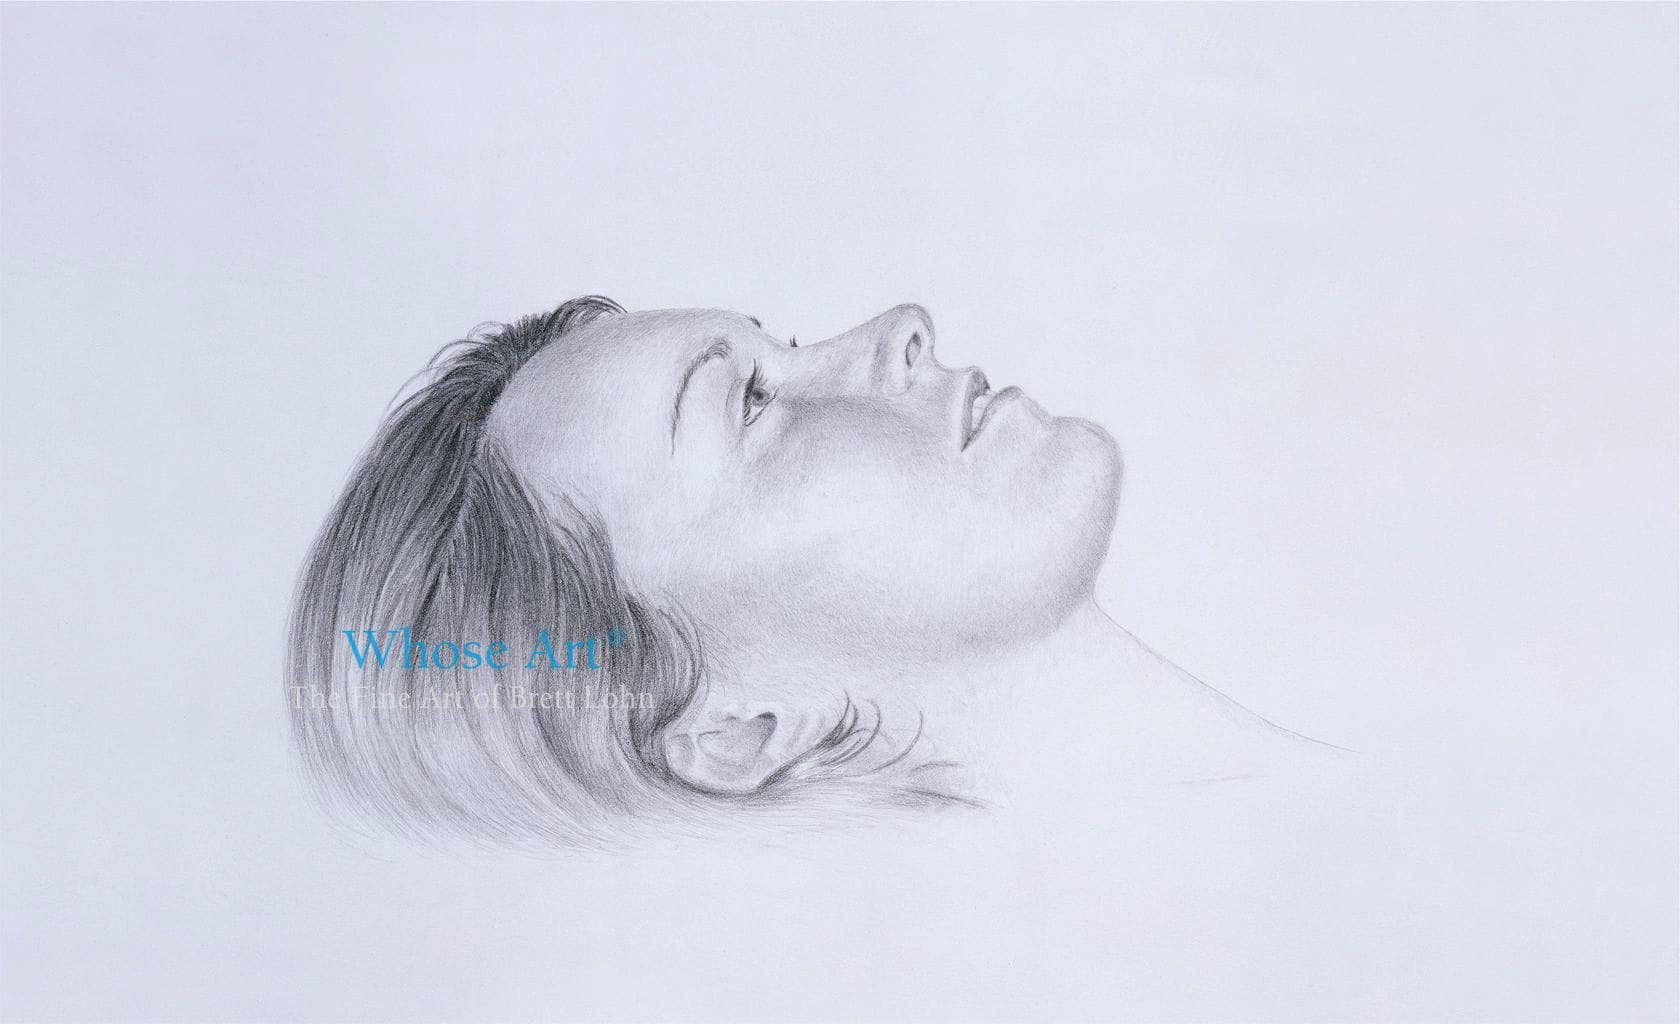 Dreaming pencil drawing showing a young woman daydreaming as she lies with her eyes open. She is peaceful & preoccupied